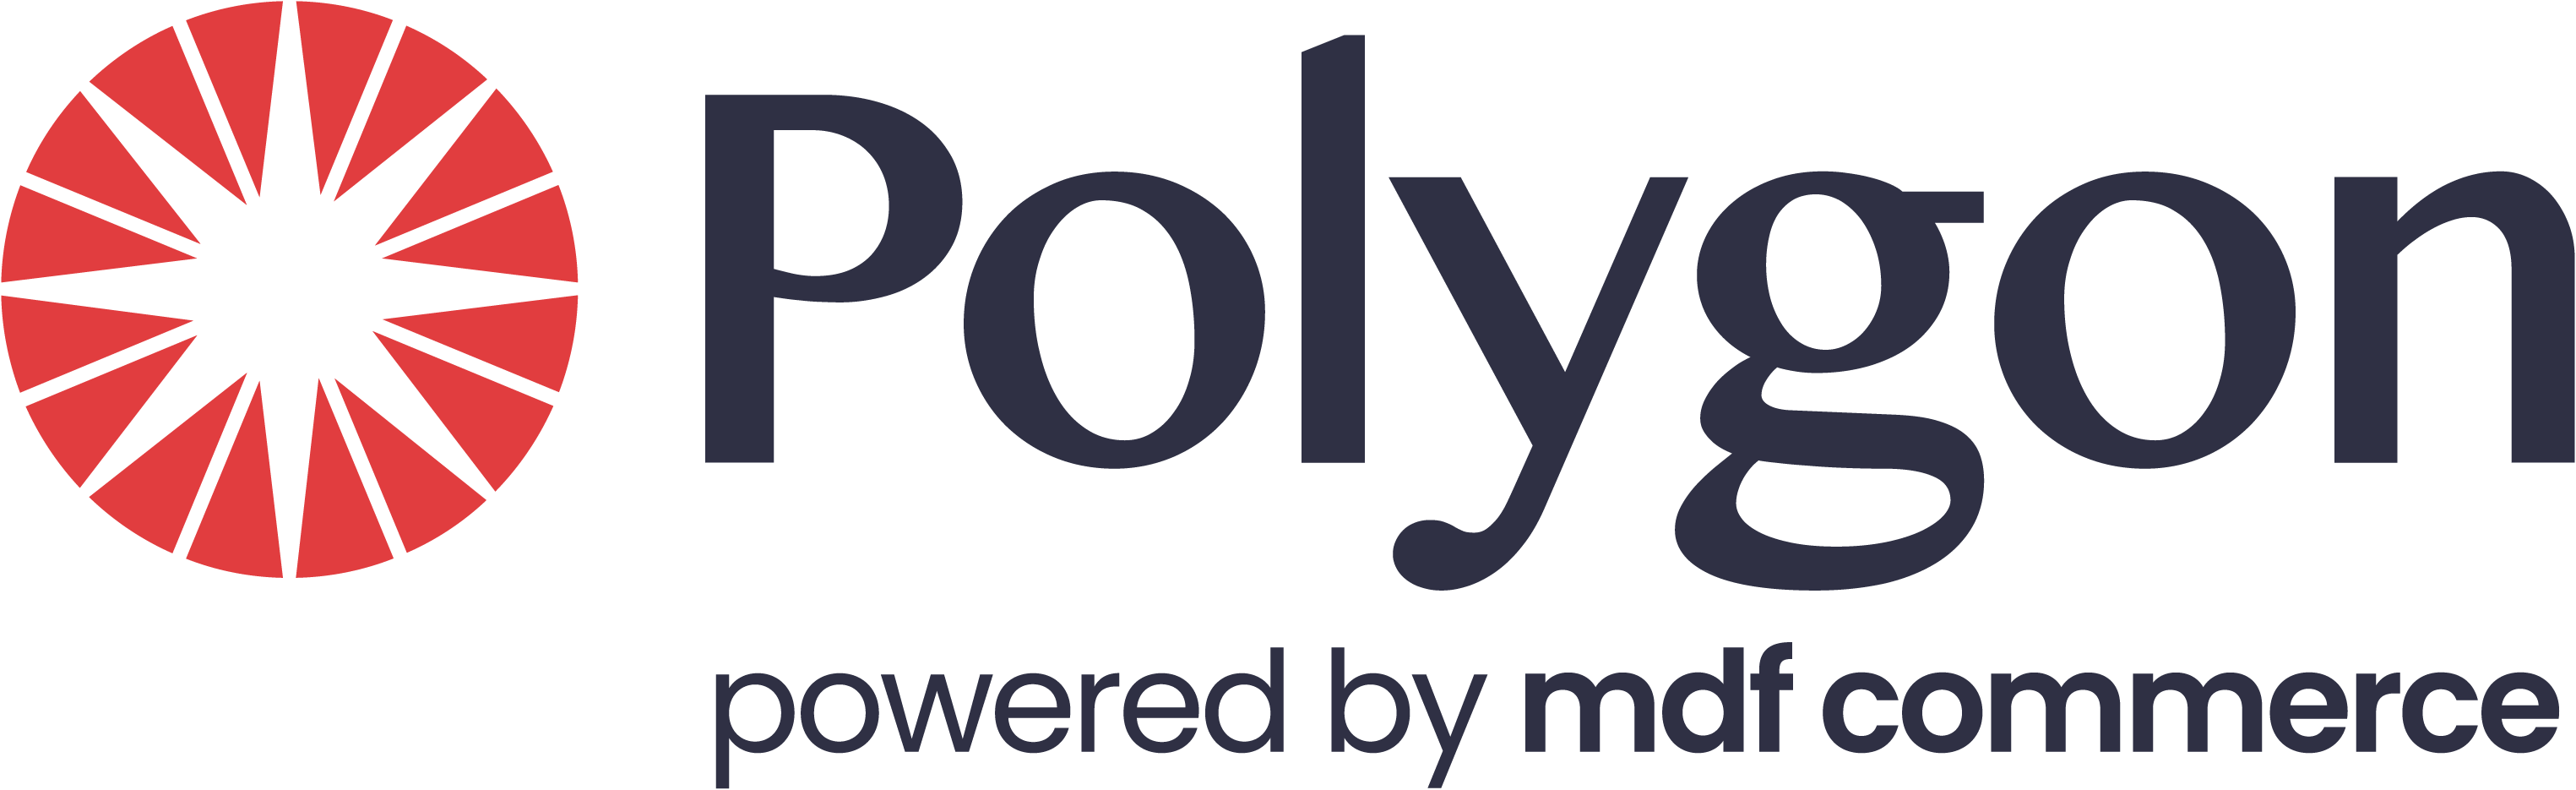 Polygon Jewelry Network